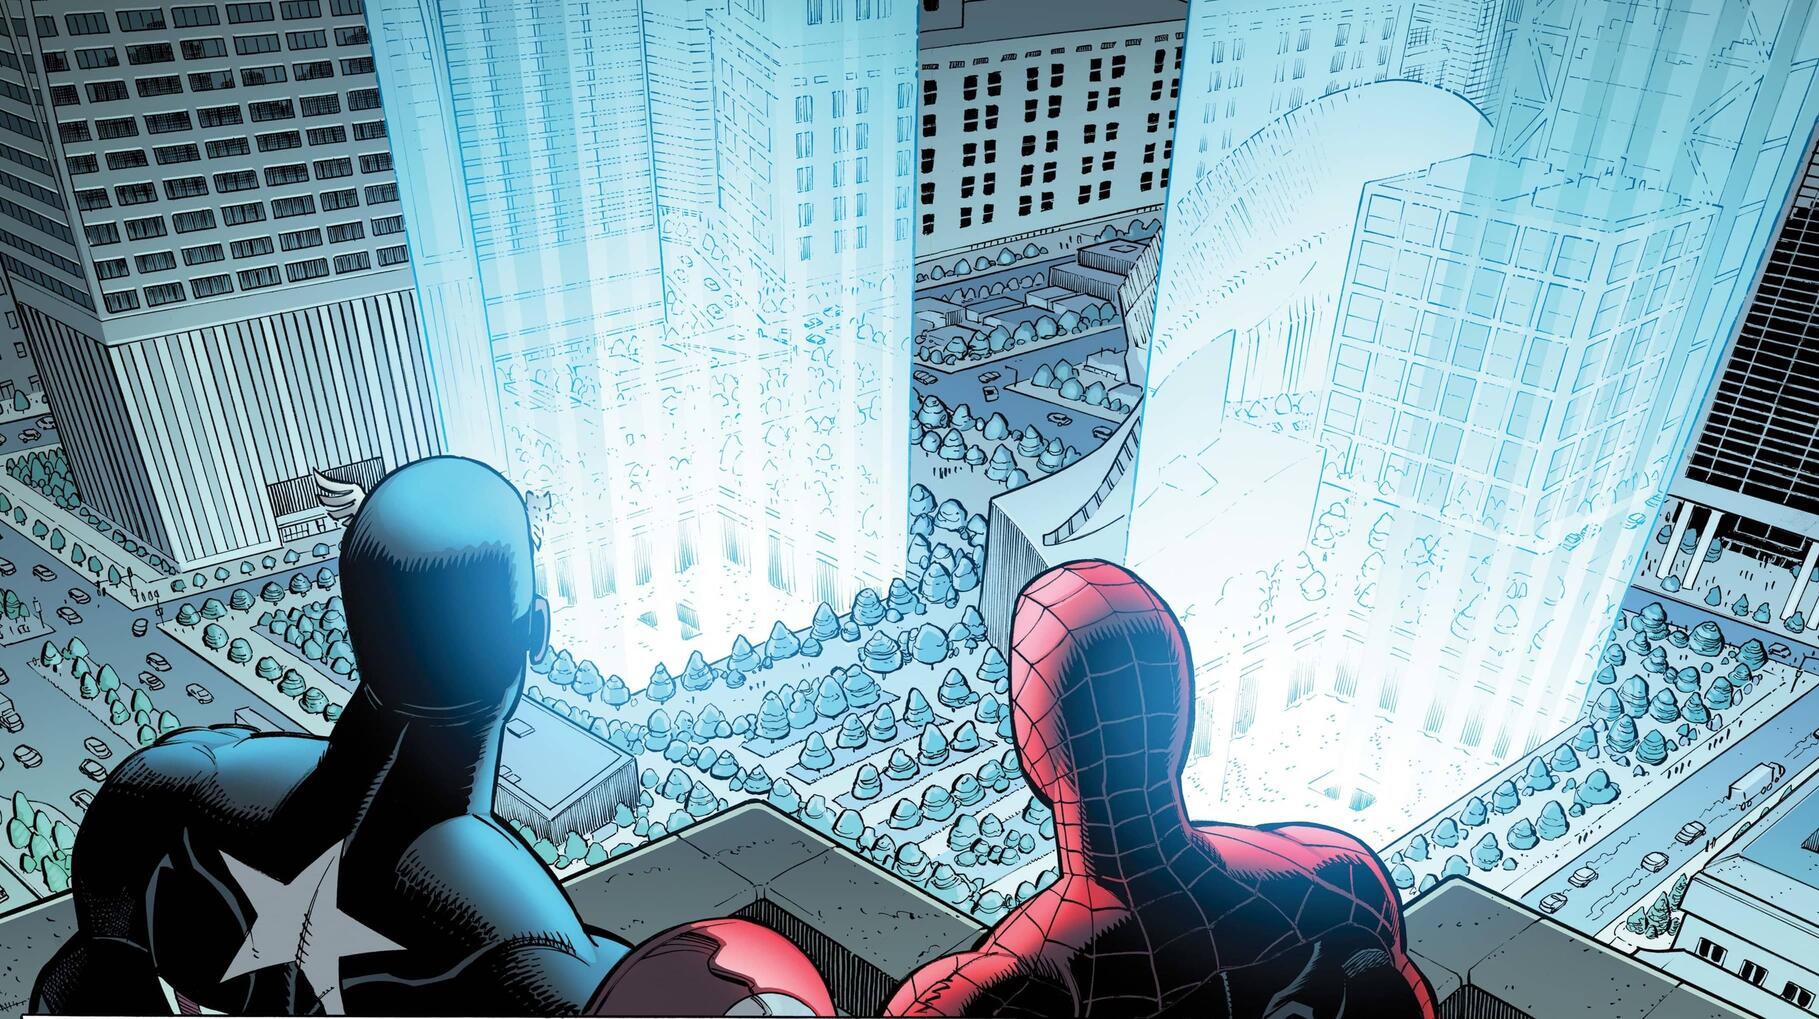 Spider-Man and Captain America pay respect to the fallen victims and heroes of 9/11.